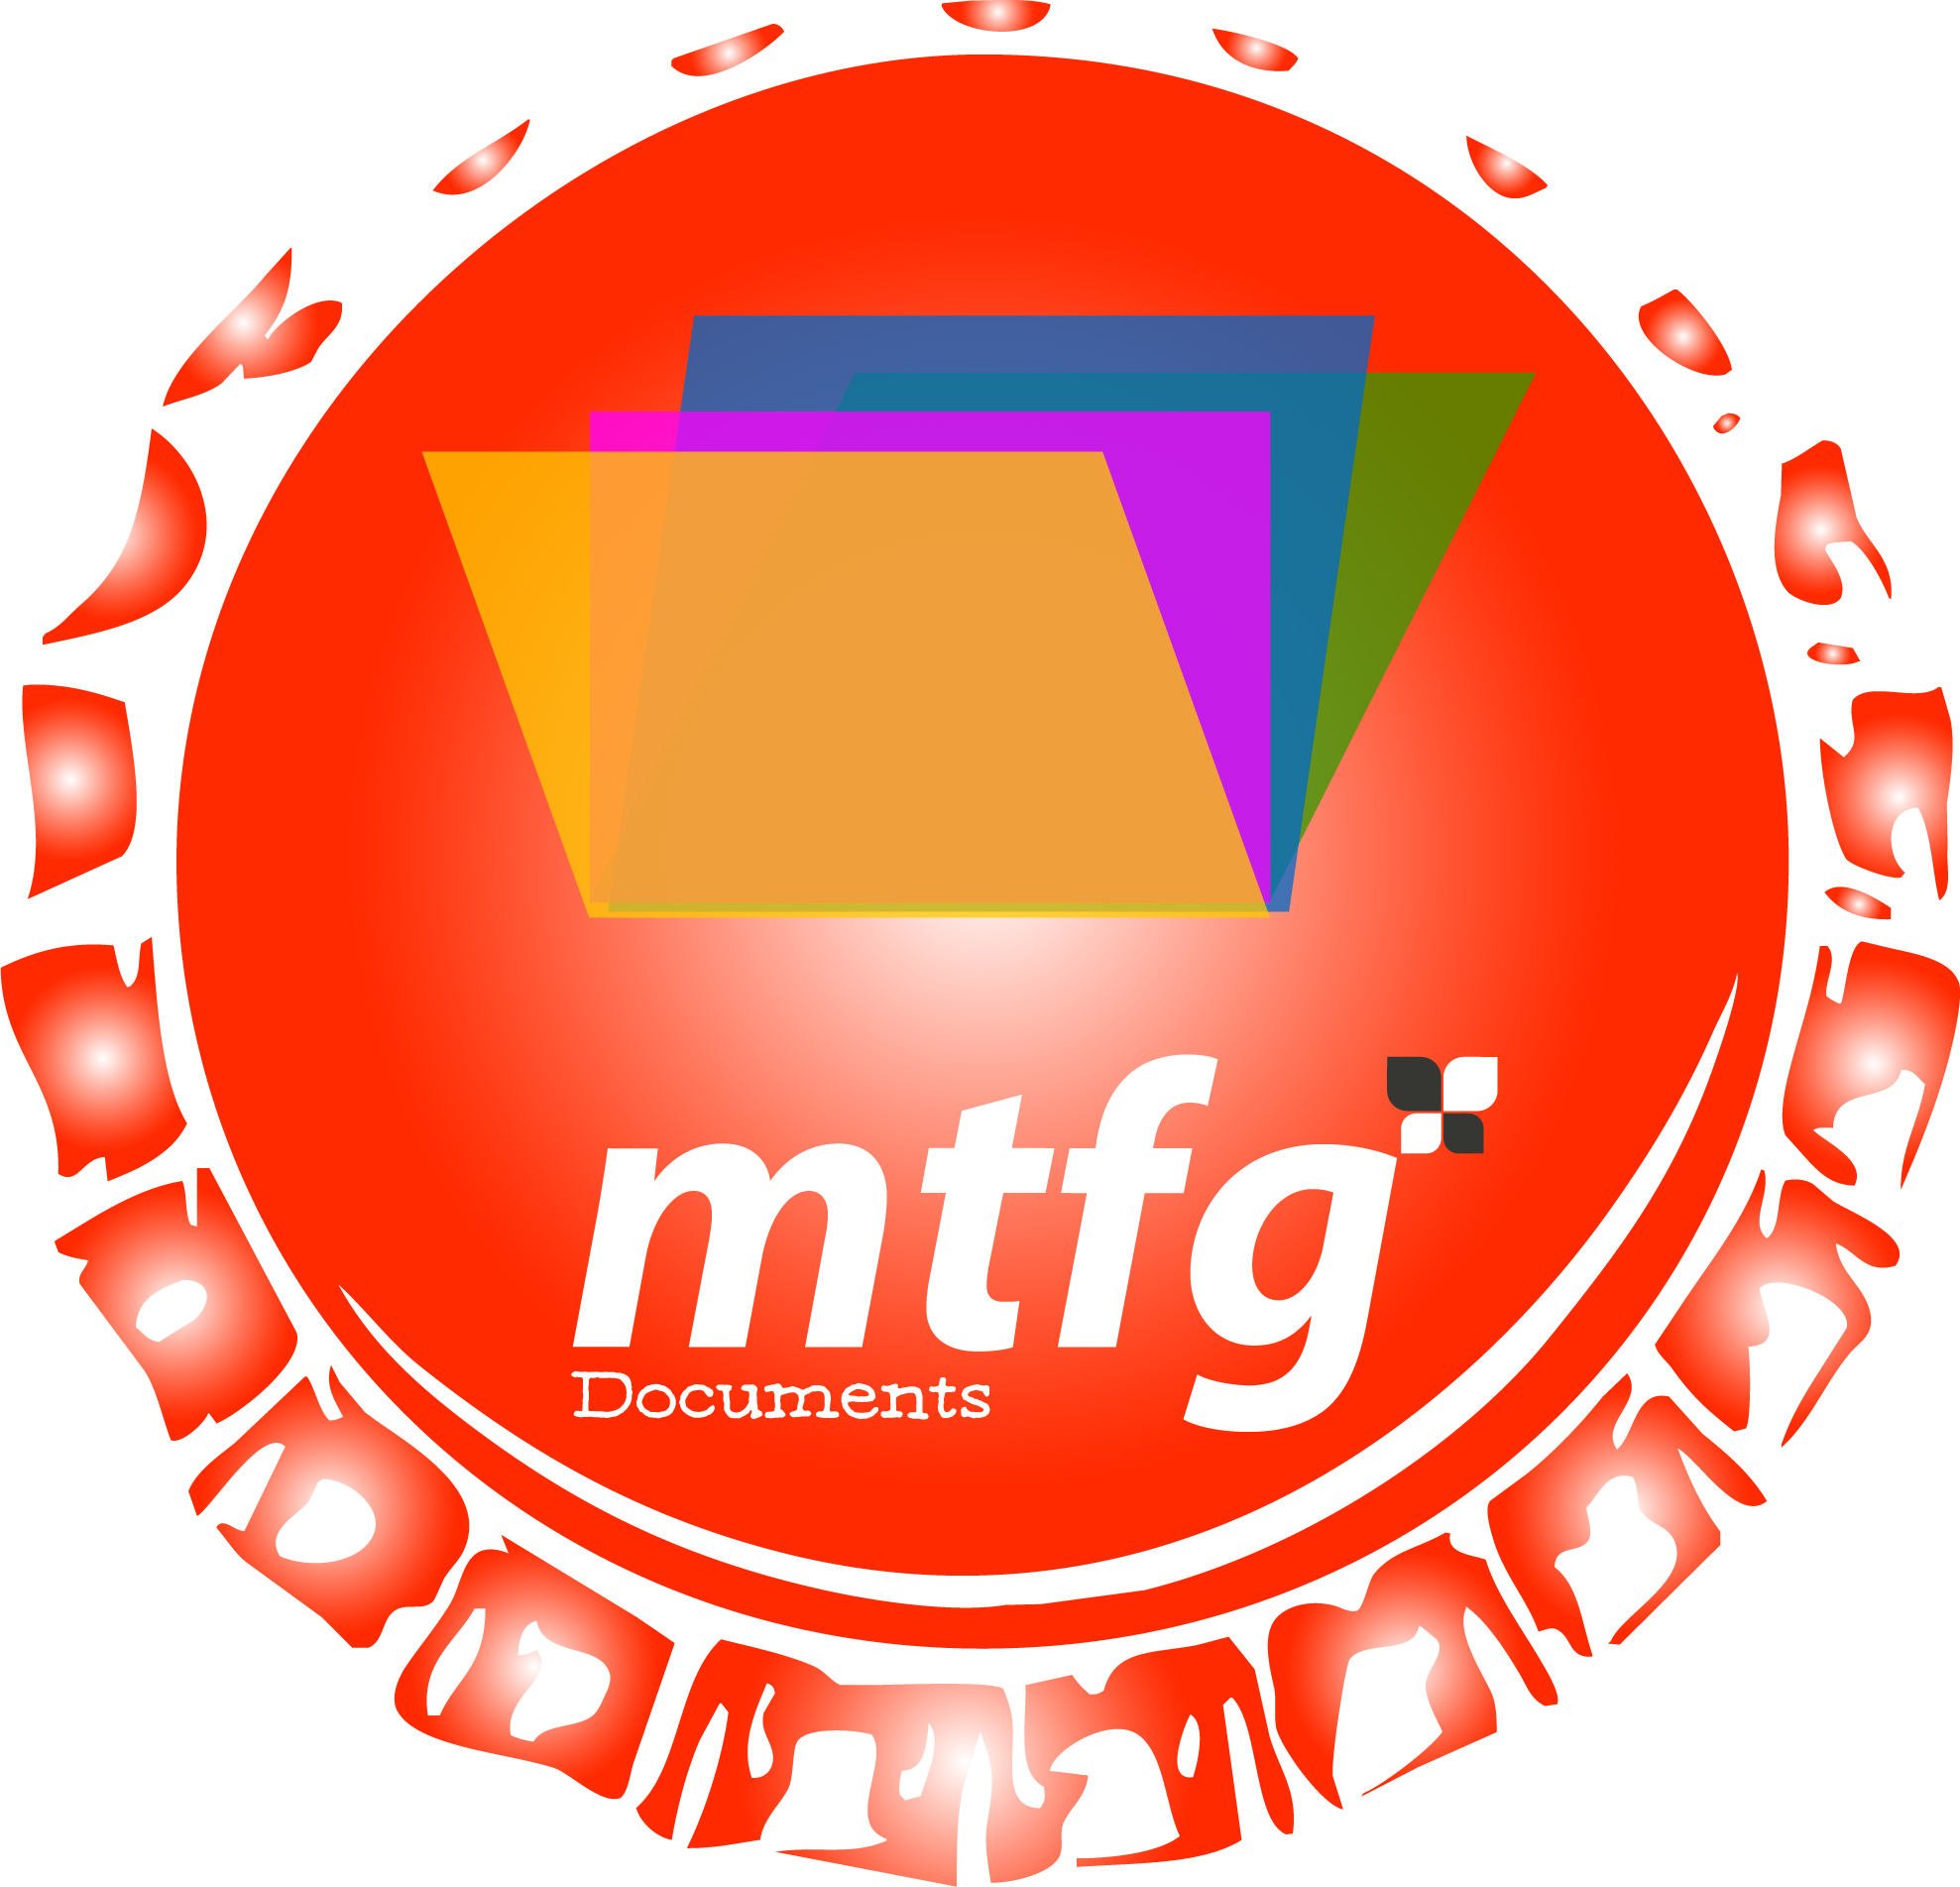 MTFG Documents